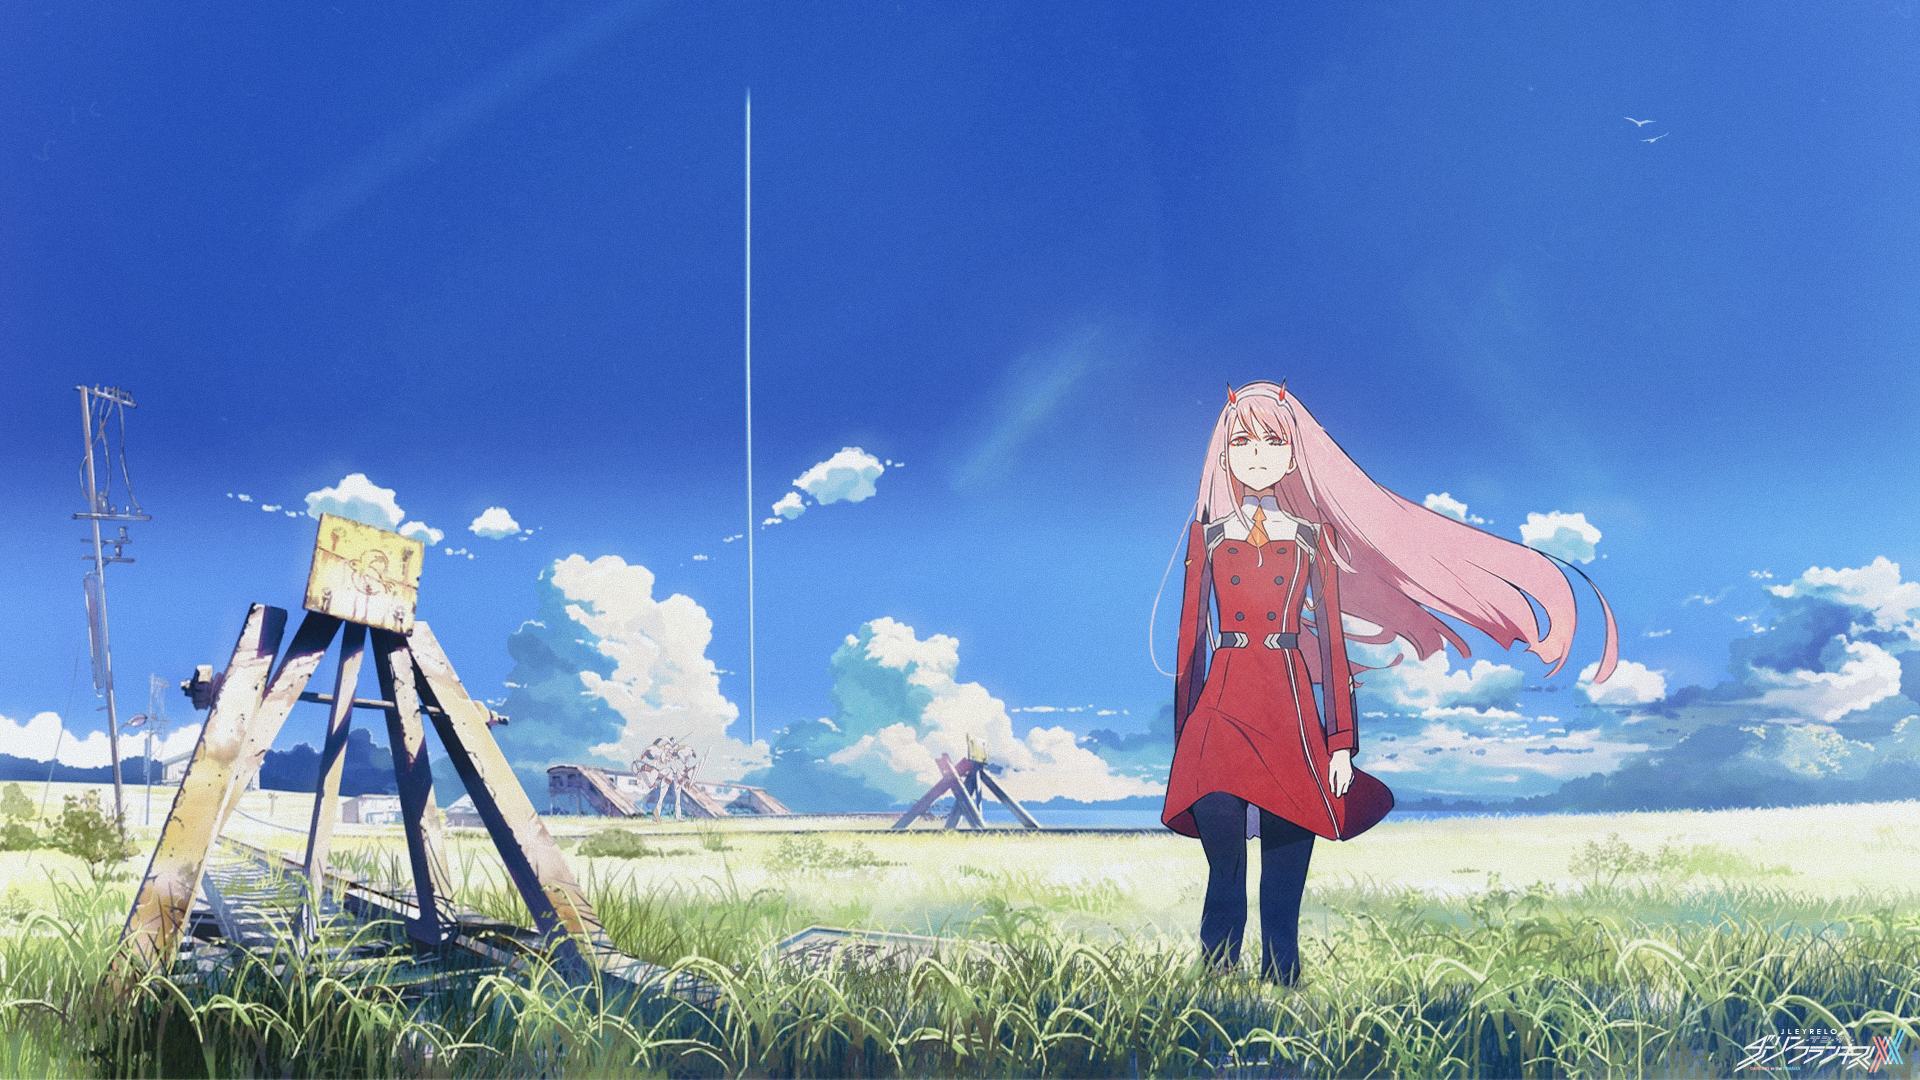 Anime 1920x1080 Darling In The Franxx Zero Two Darling In The Franxx Pink Hair Darling In Franxx Clear Sk Anime Characters Darling In The Franxx Female Anime